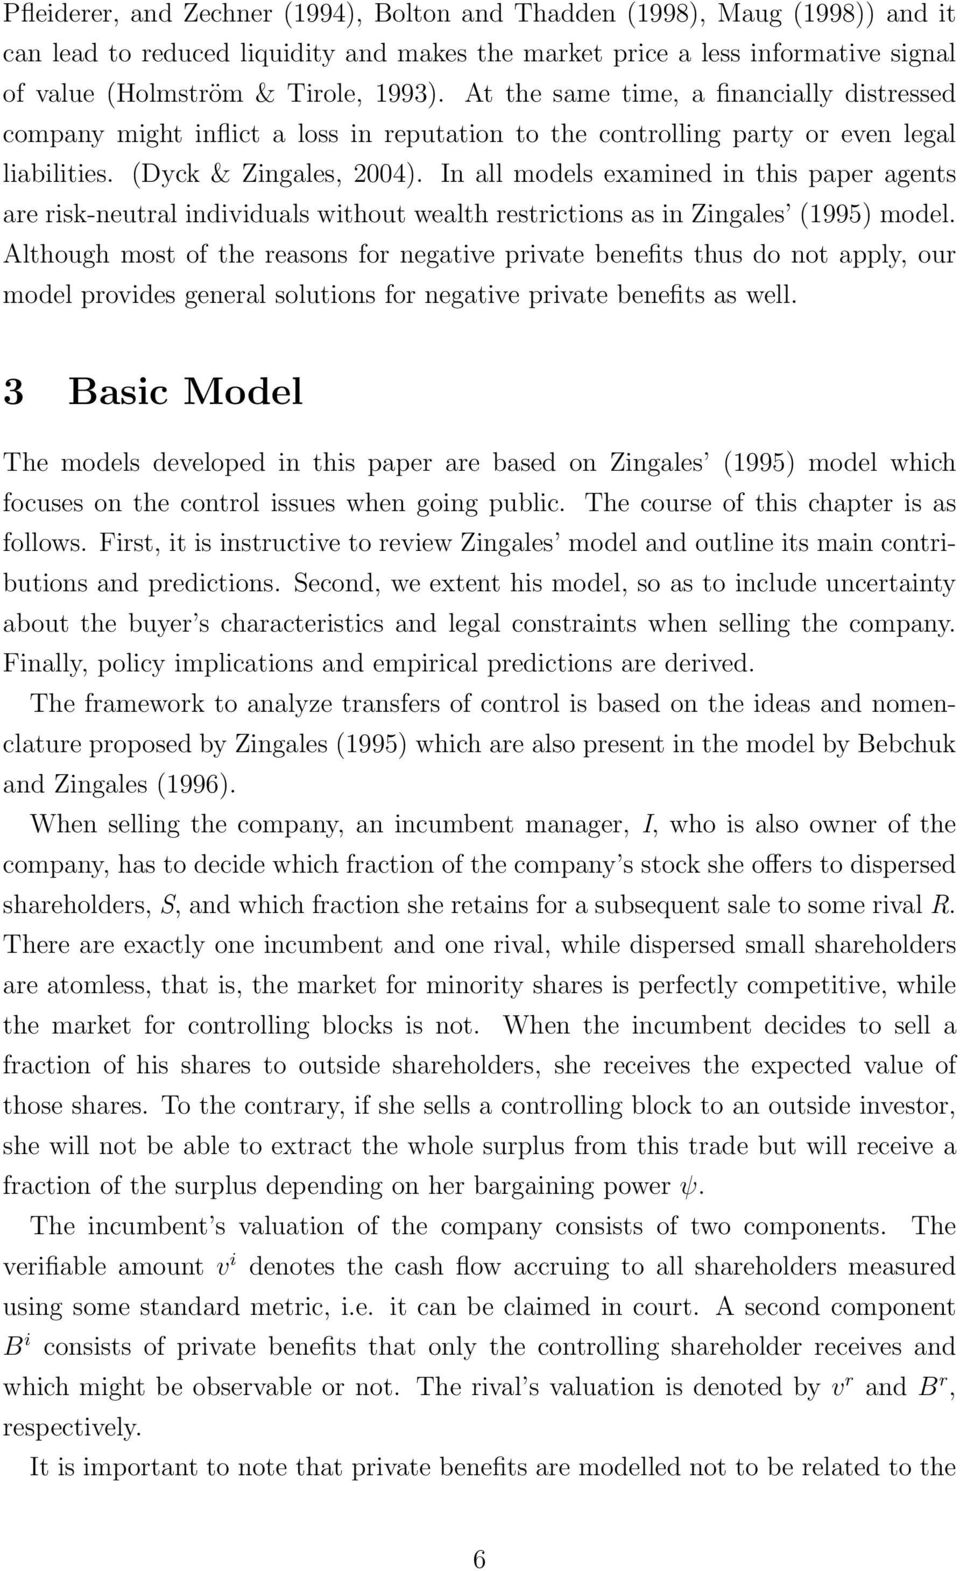 In all models examined in this paper agents are risk-neutral individuals without wealth restrictions as in Zingales (1995) model.